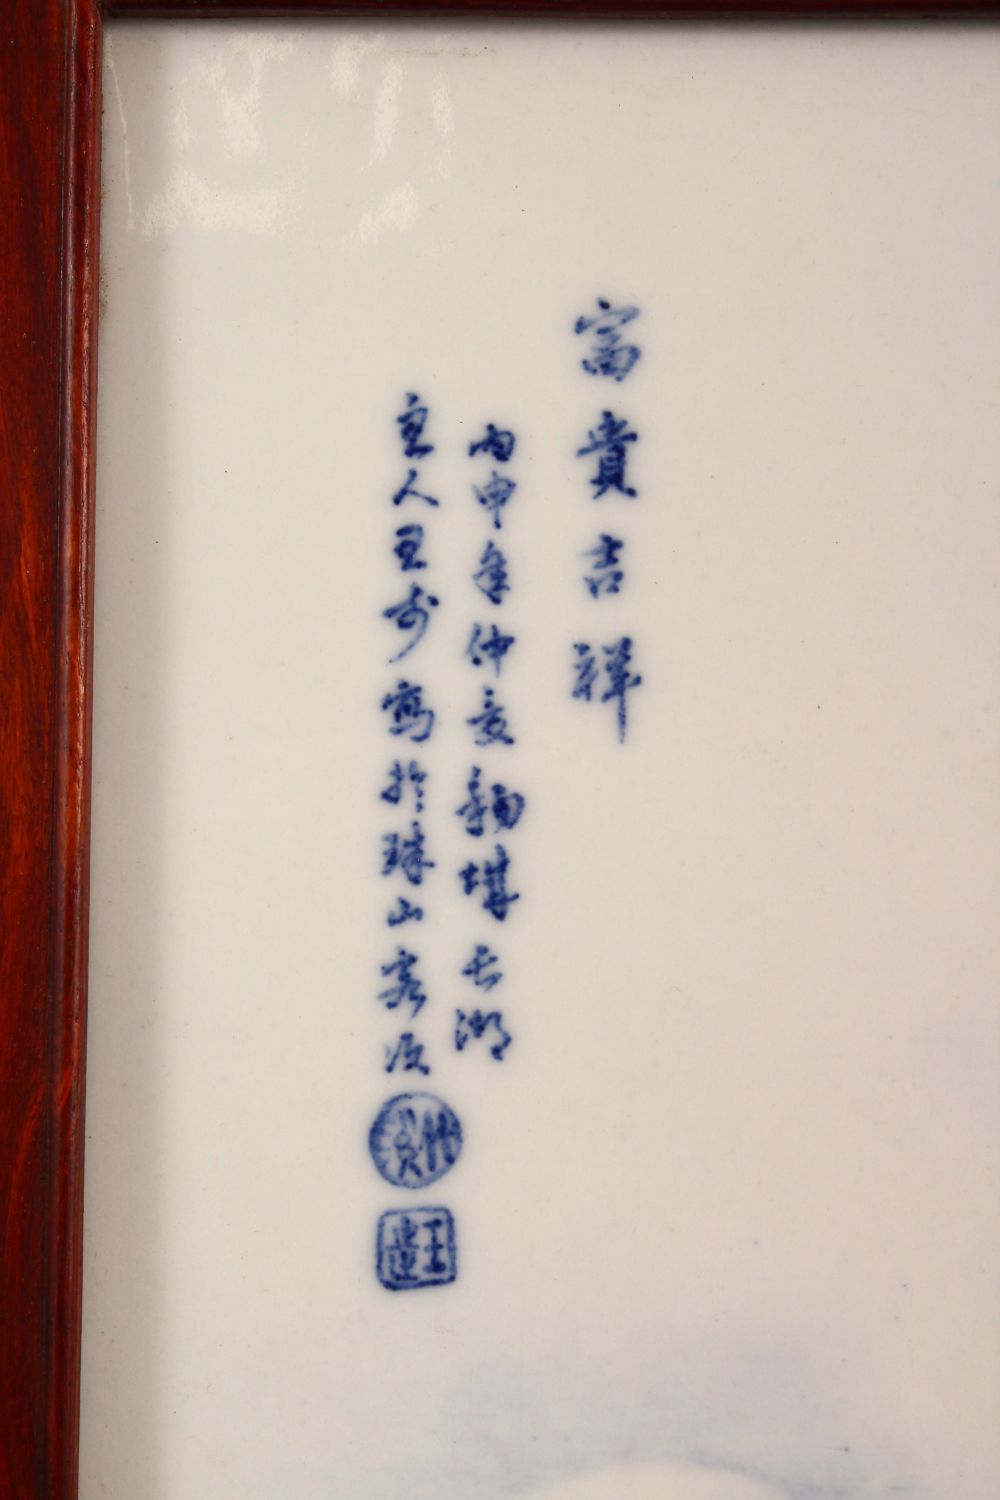 A CHINESE REPUBLIC STYLE BLUE & WHITE FISH PANEL, decorated with fish, crayfish and reed, upper left - Image 3 of 4